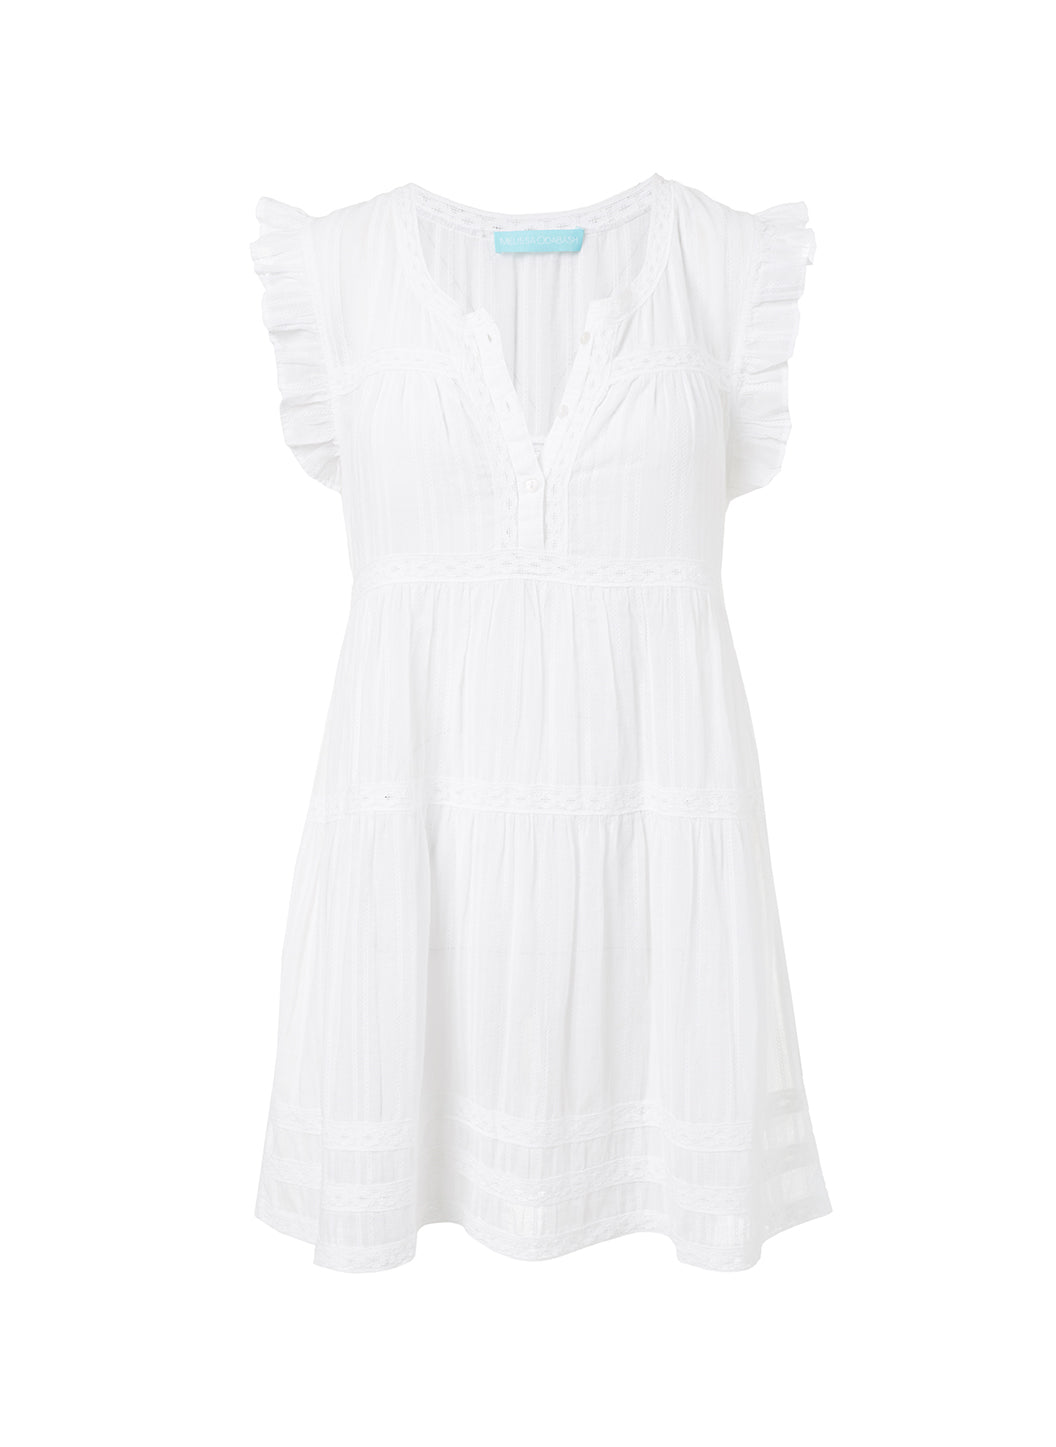 Rebekah White Button-Front Short Dress - Melissa Odabash Beach Dresses